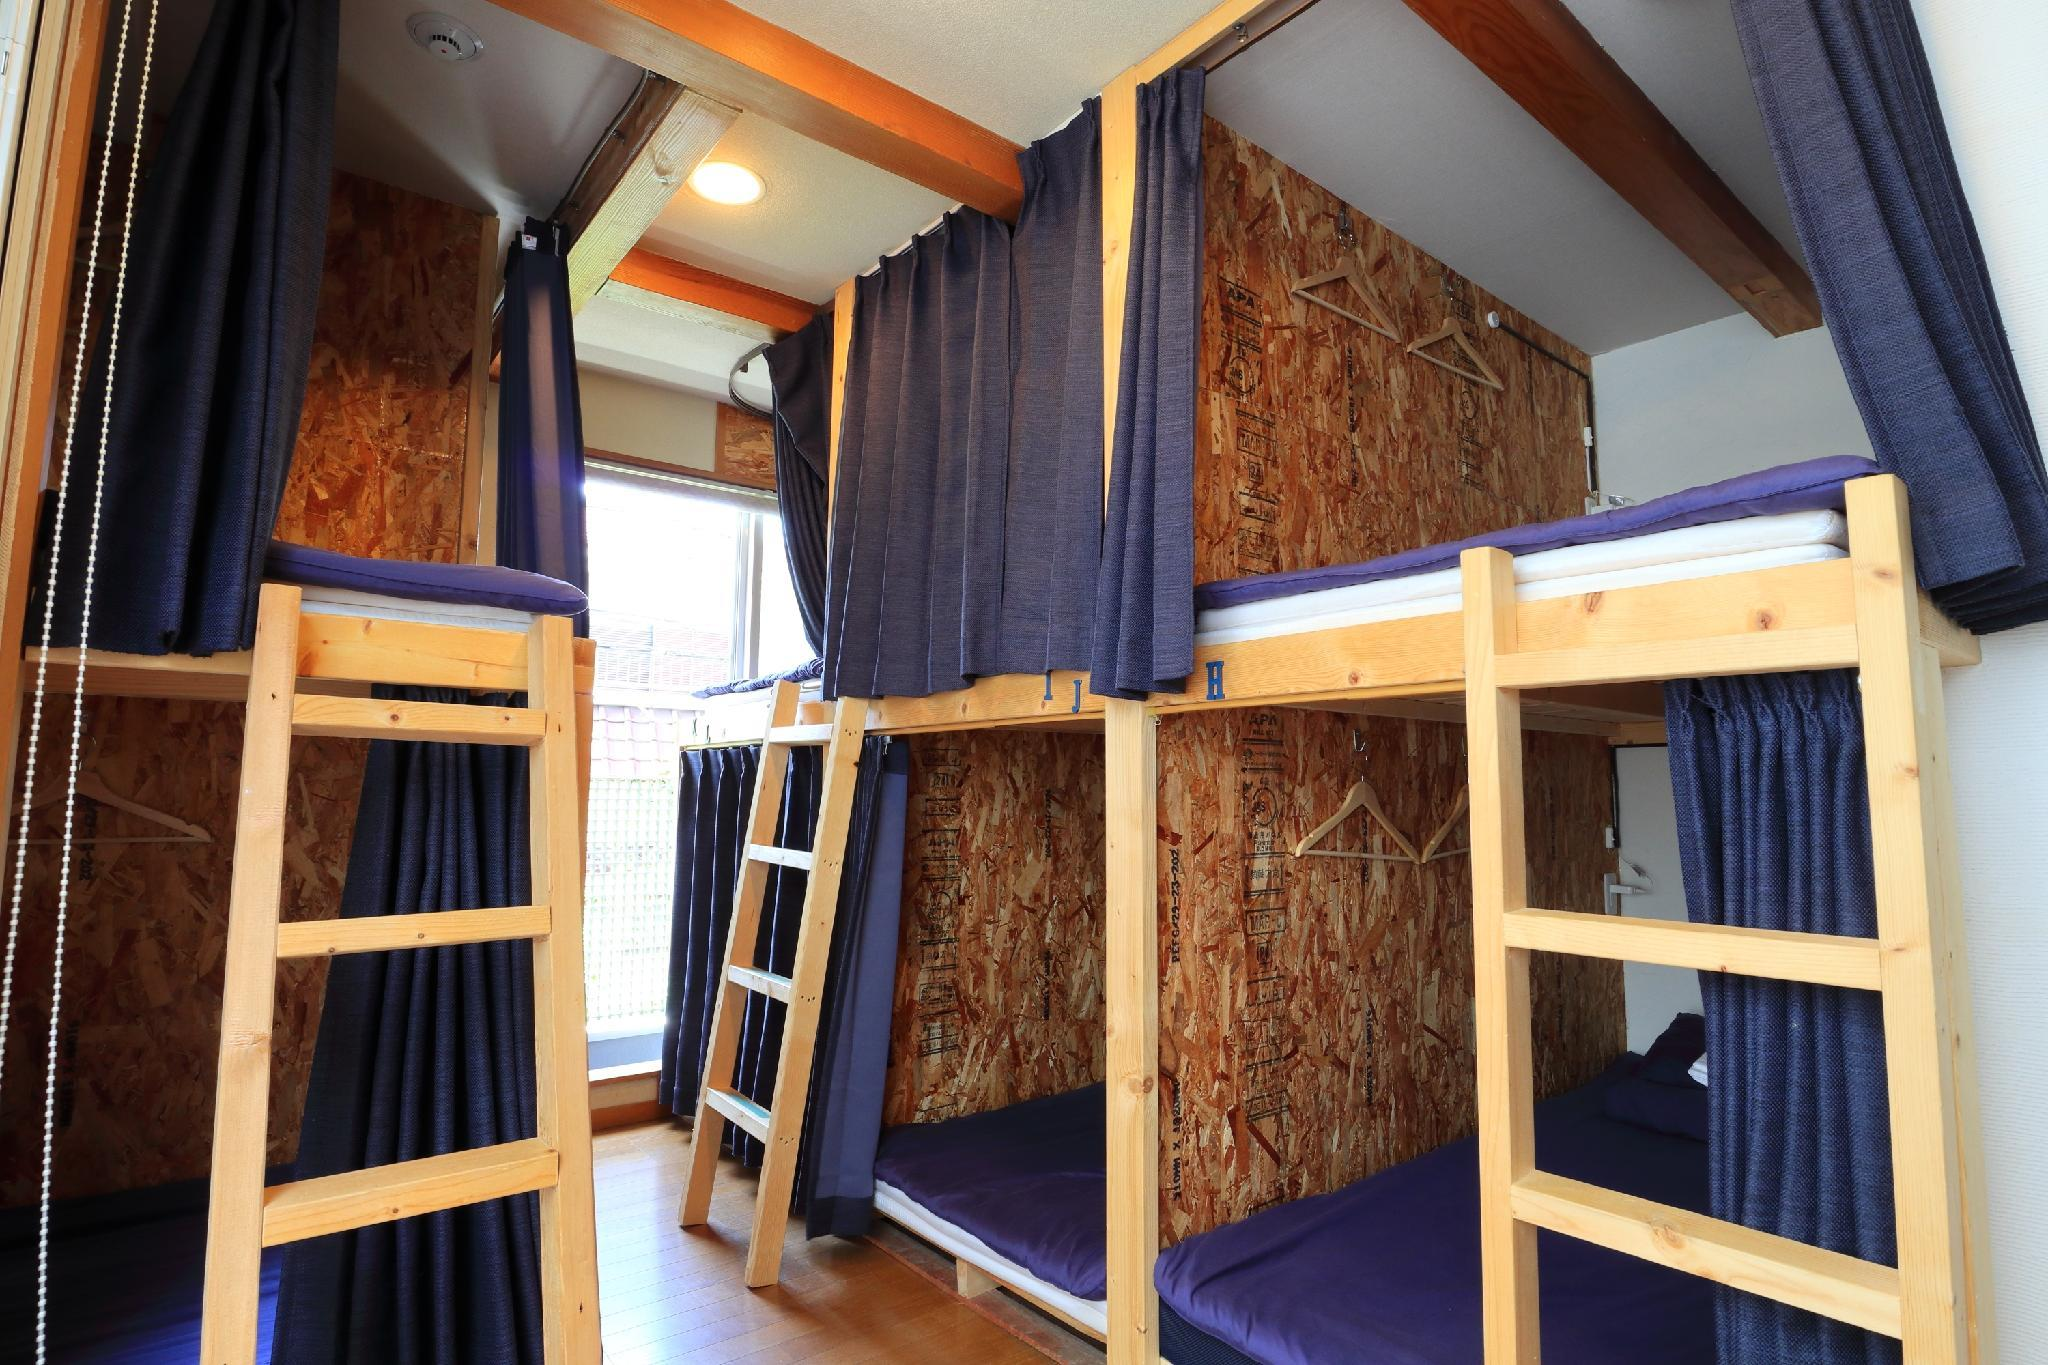 Ranjang Susun di Asrama Campuran (Bunk Bed In Mixed Dormitory)